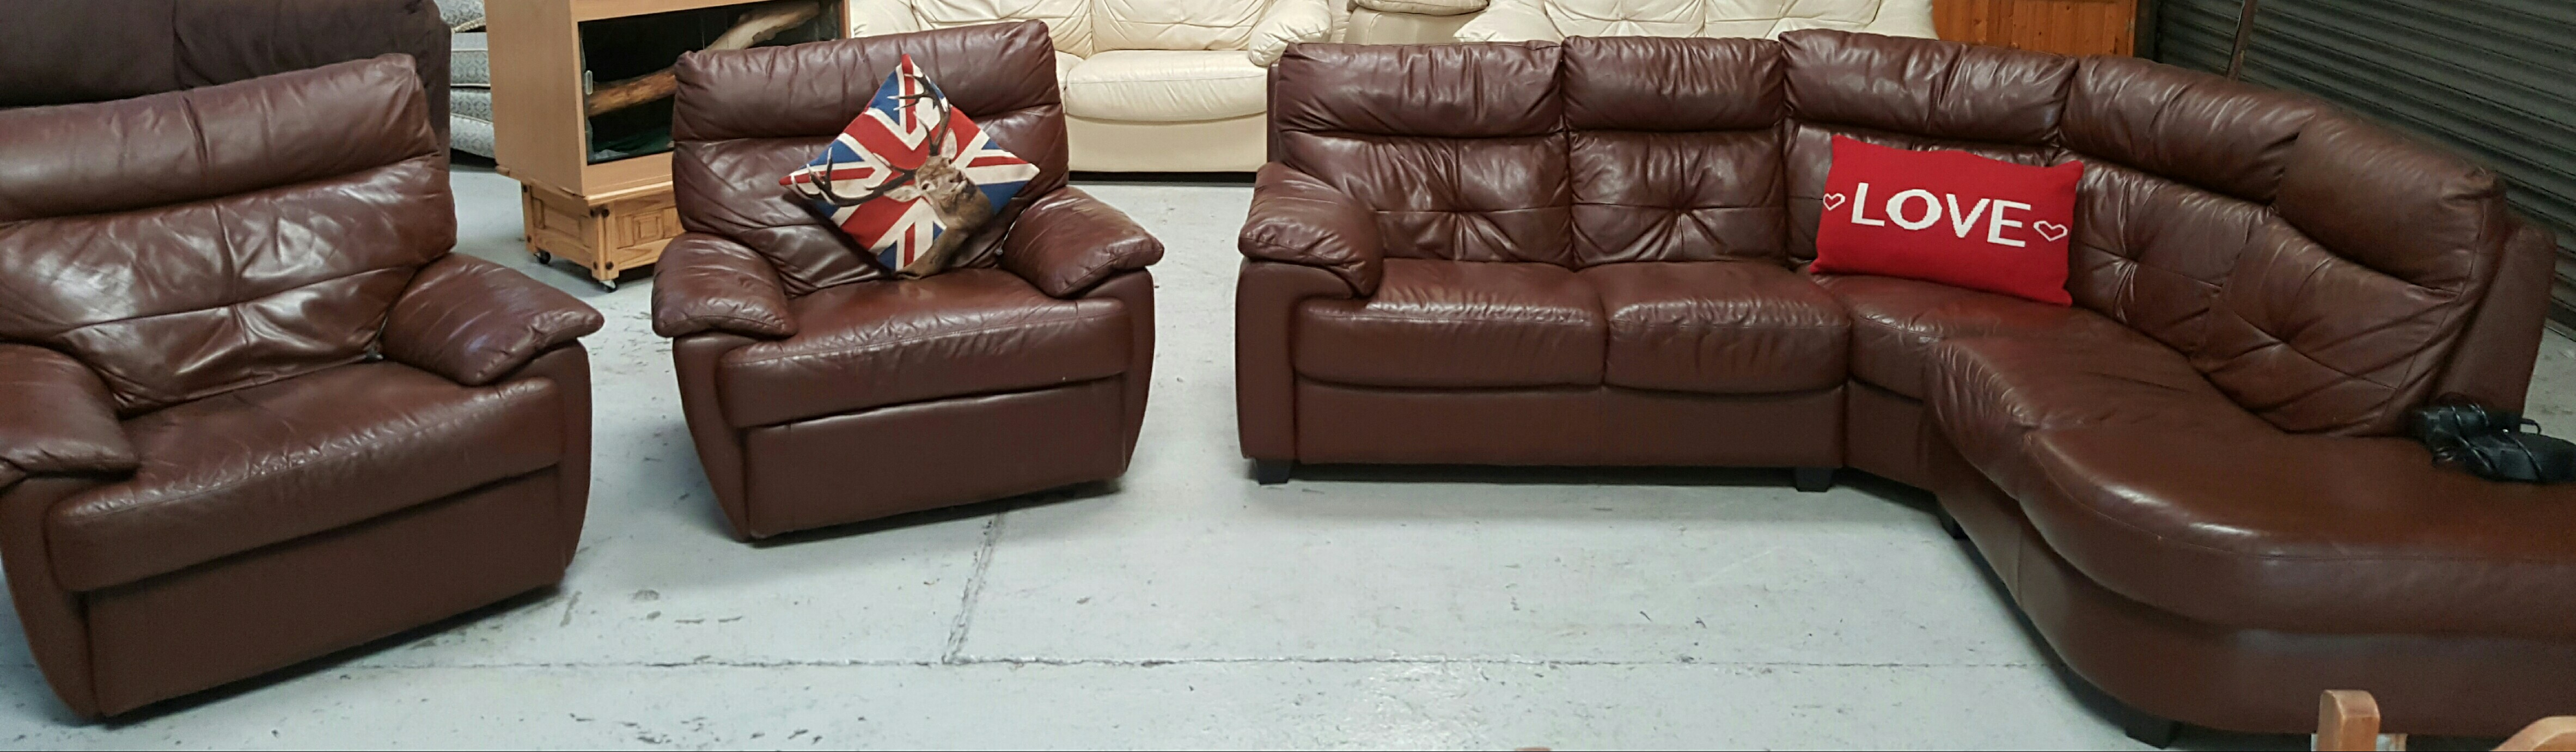 Leather Reclining Chair For Sale In Uk View 192 Bargains